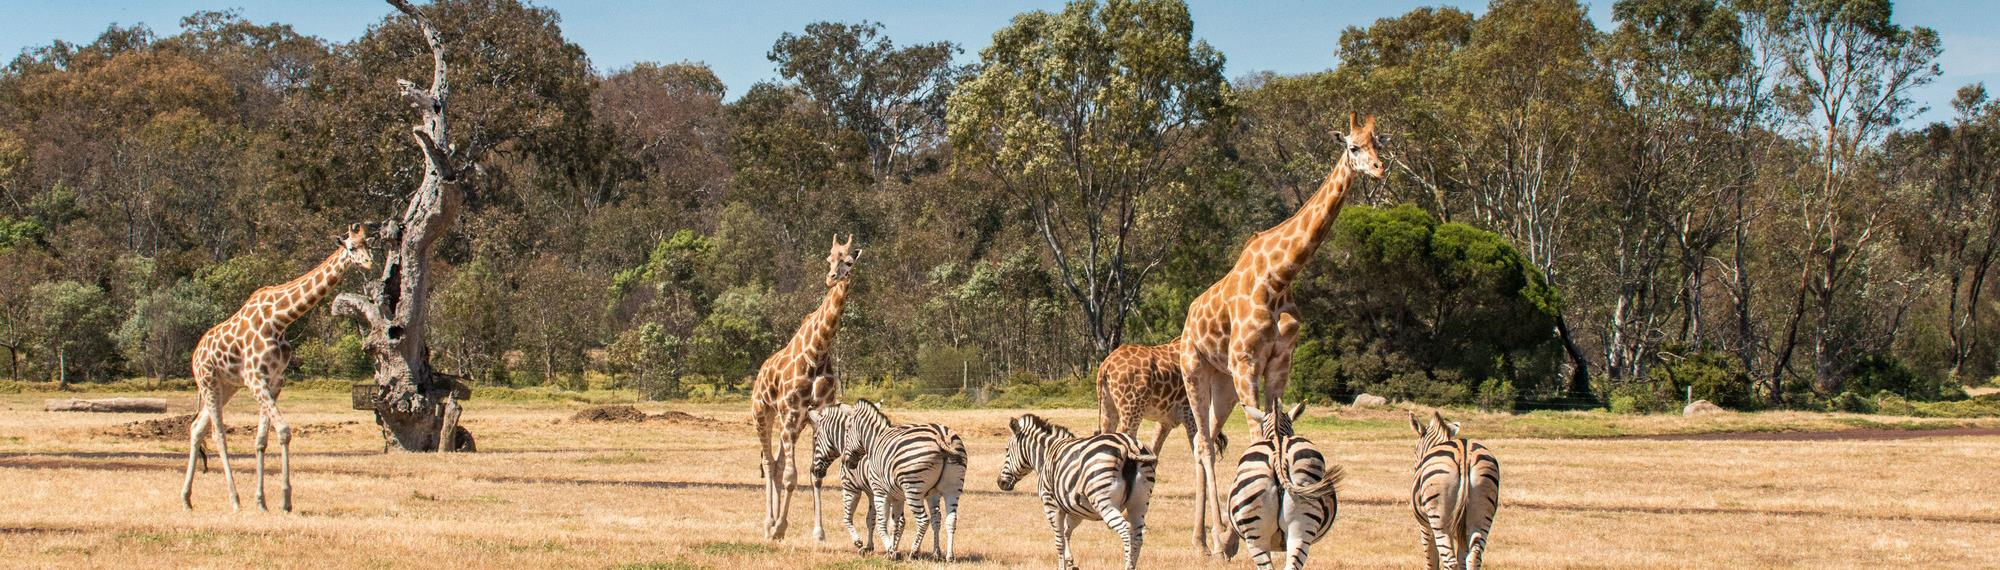 A group of five zebras and four giraffes on the open Savannah at Werribee Open Range Zoo.